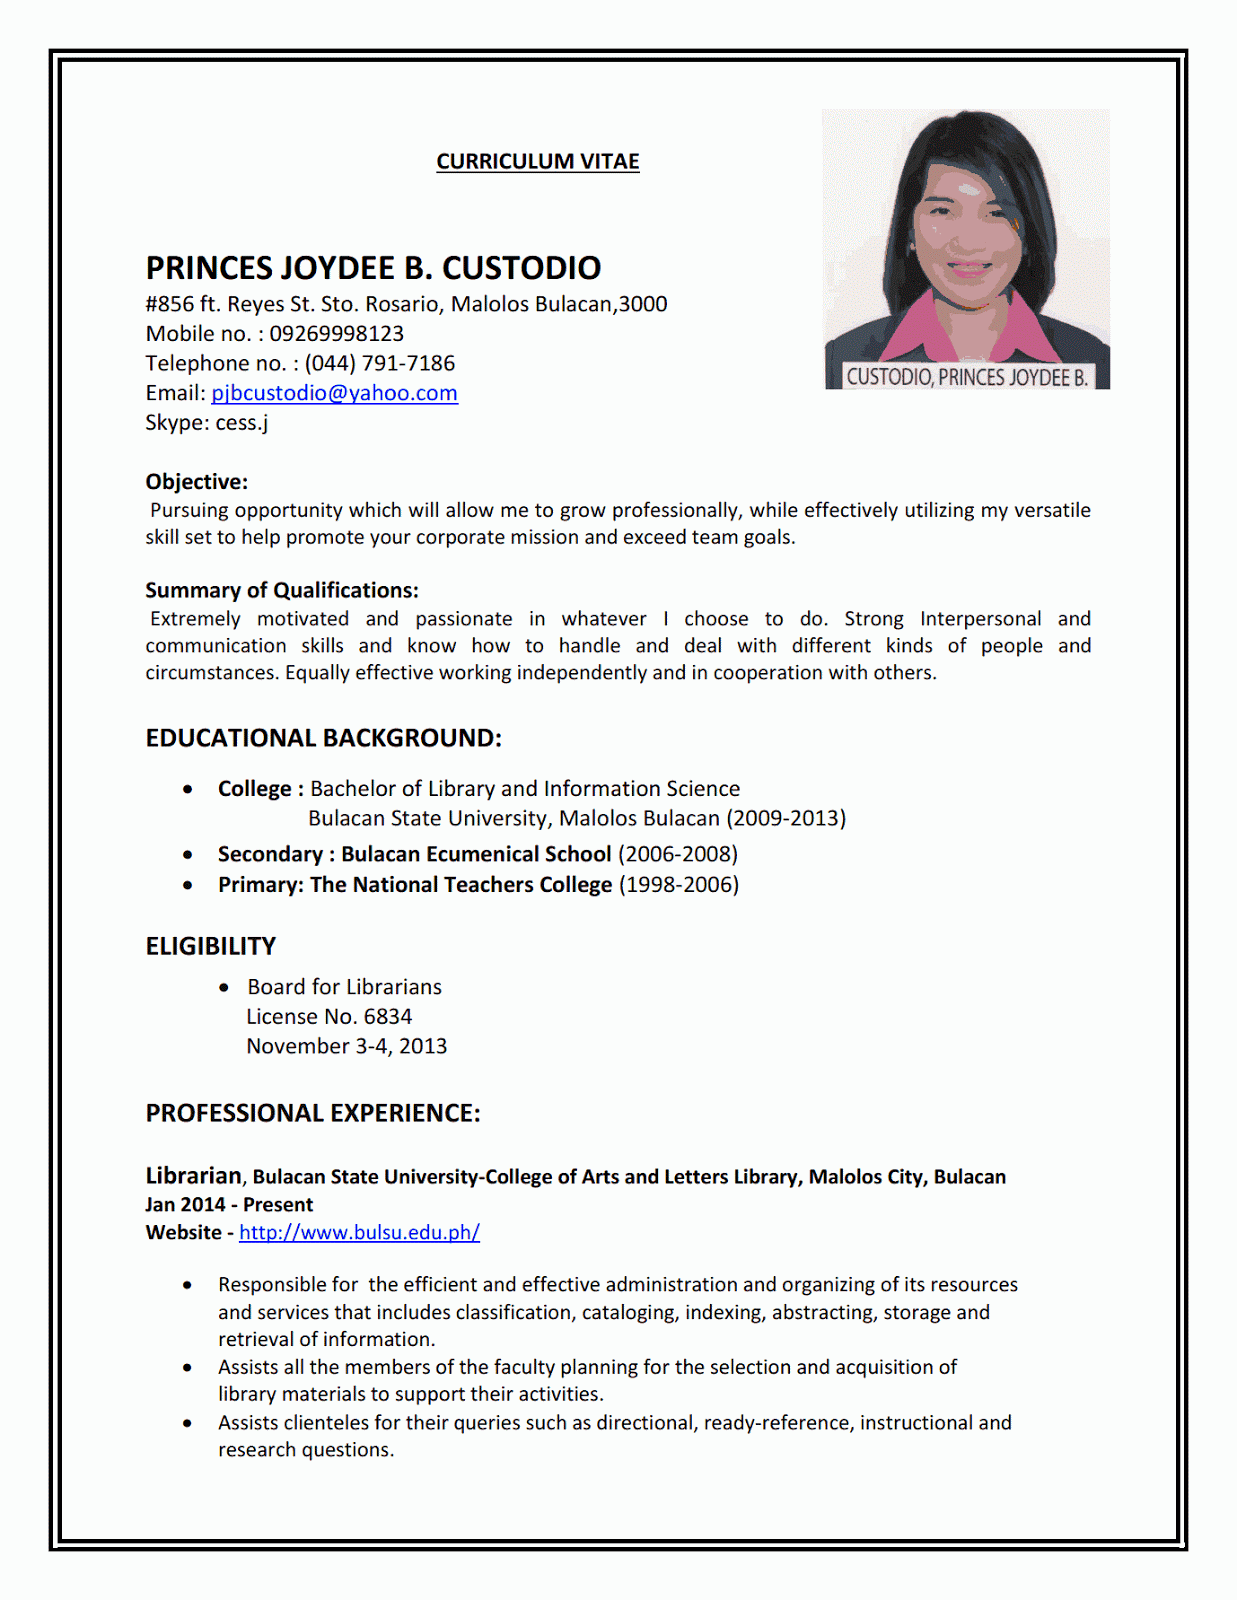 resume sample first job sample resumes - Sample Resume Student First Job